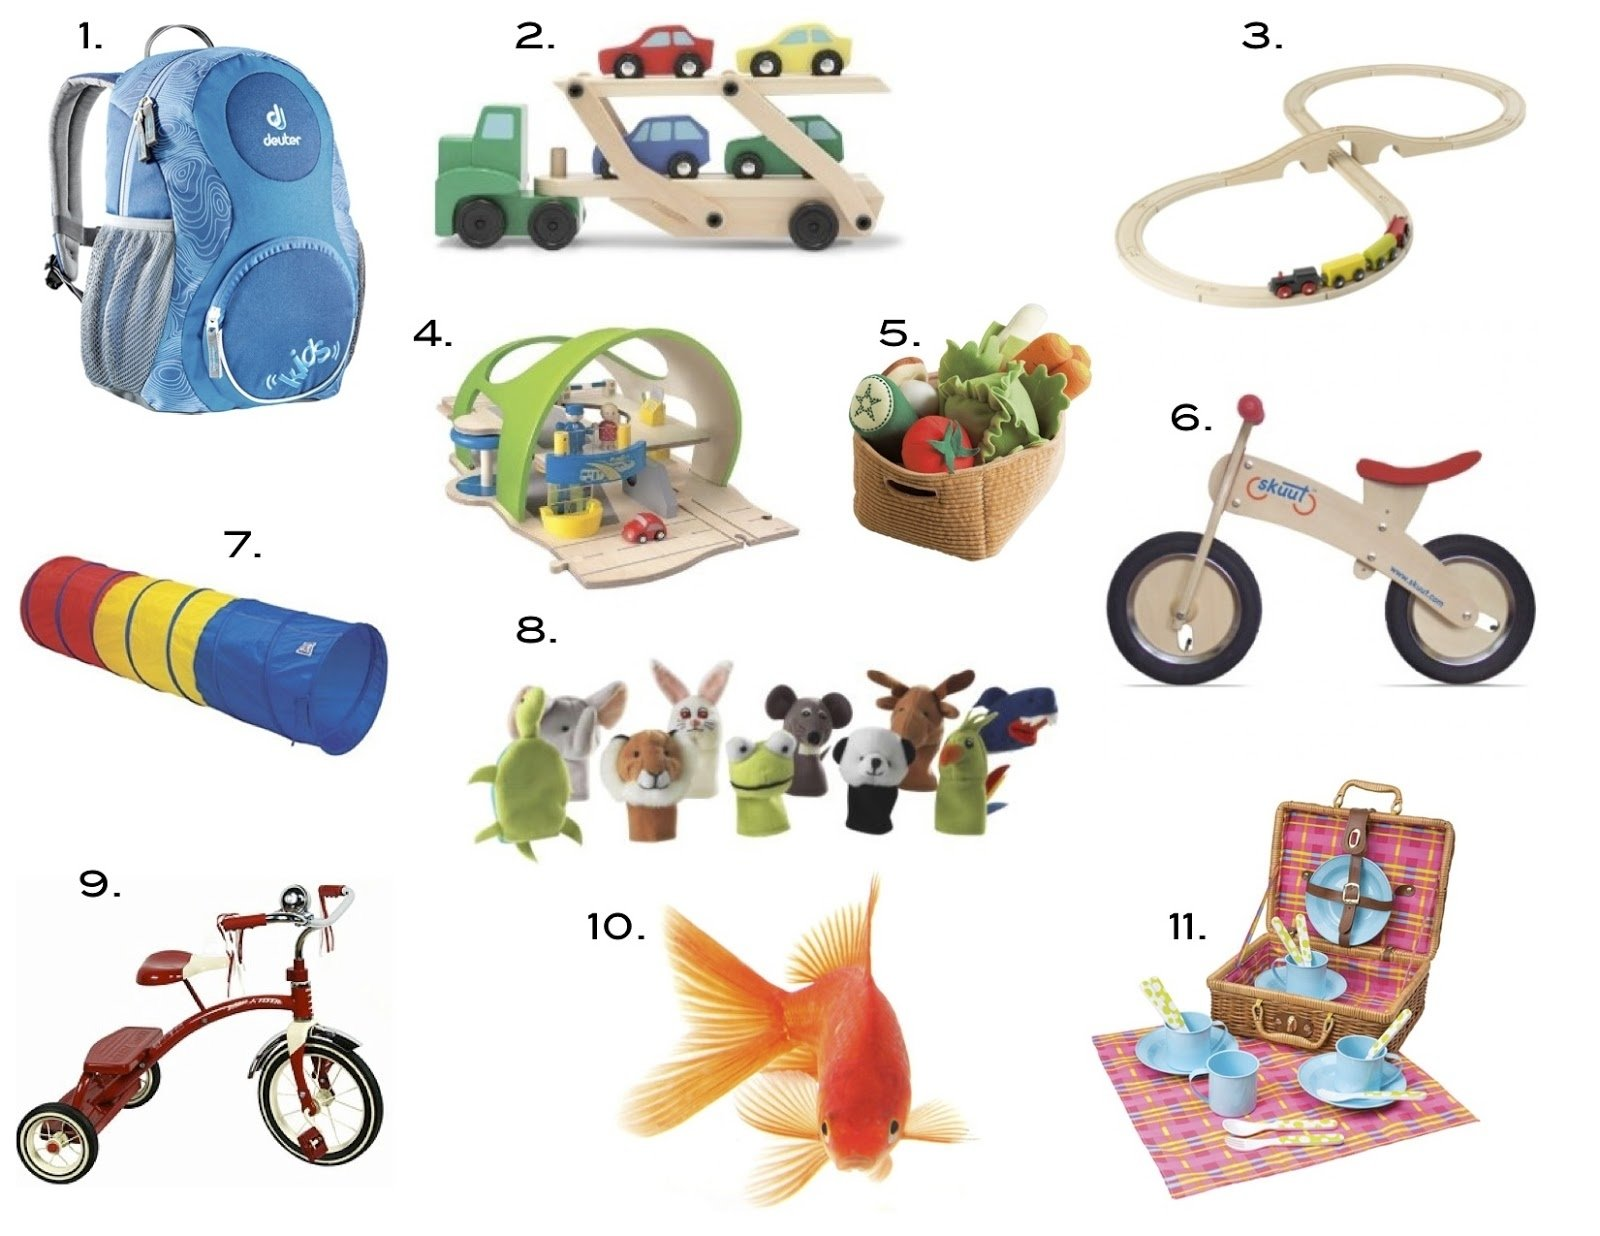 10 perfect christmas ideas for 2 year old boy - 2 Year Old Christmas Ideas